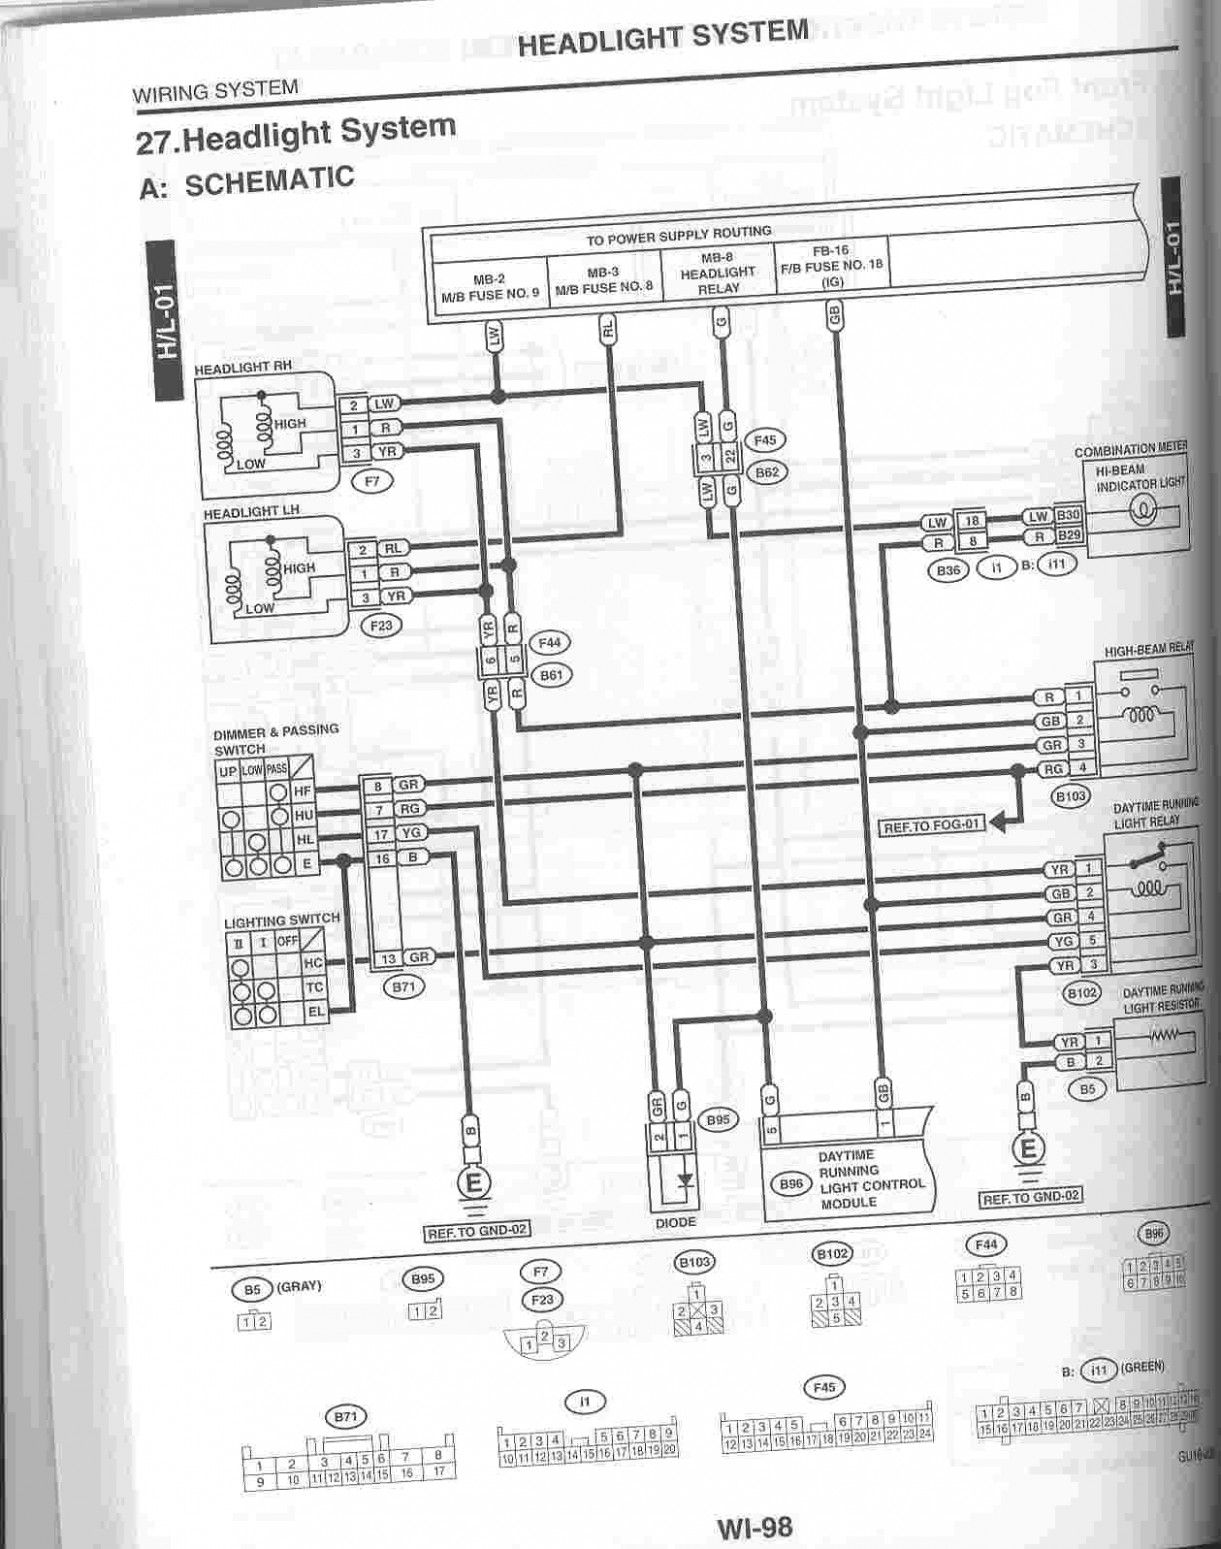 5 Subaru Outback Engine Diagram 5 Subaru Outback Engine Diagram